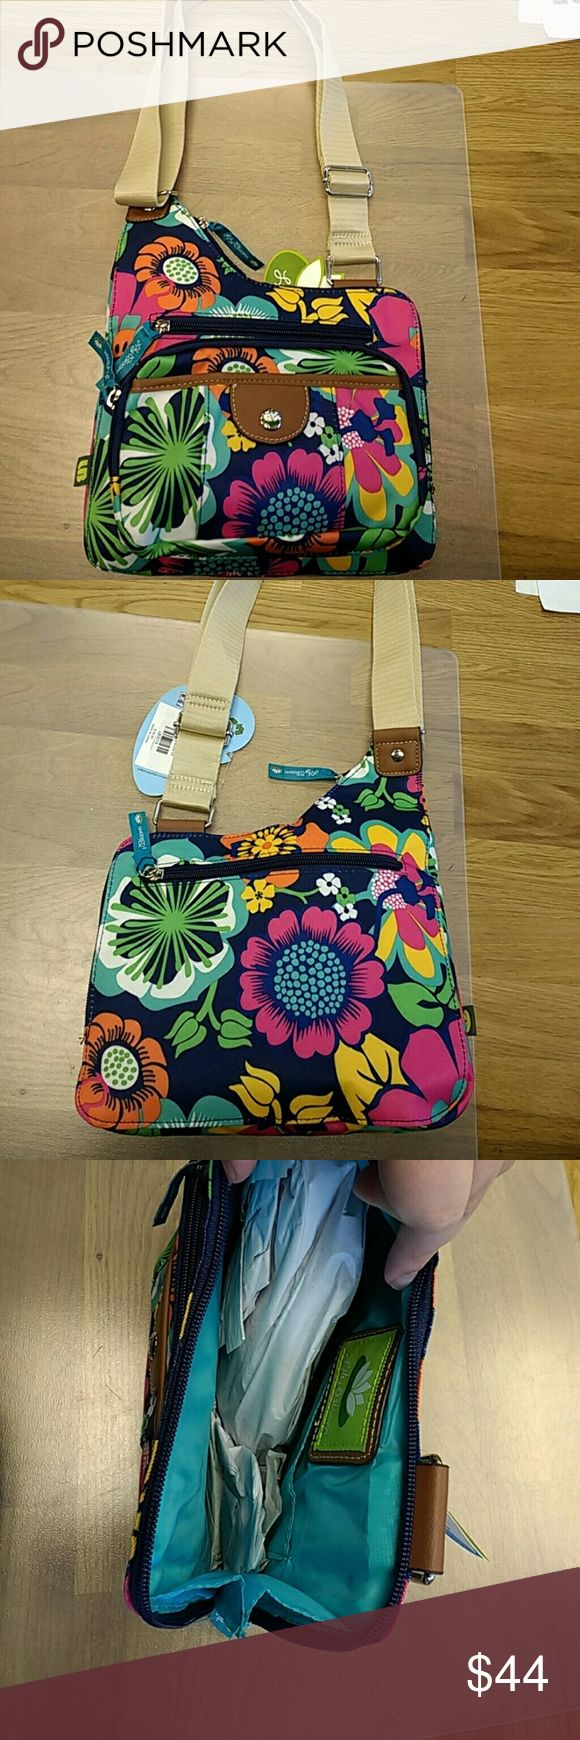 """Lily Bloom Crossbody Bag Lily Bloom Brenda crossbody bag in floral print. Material is their signature fabric made from recycled plastic bottles. 11""""H x 9.25""""W x 1""""D Adjustable strap, approx. 25"""" Top zipper closure. Three exterior zippered pockets. One interior pocket and one interior tab pocket. Lily Bloom  Bags"""